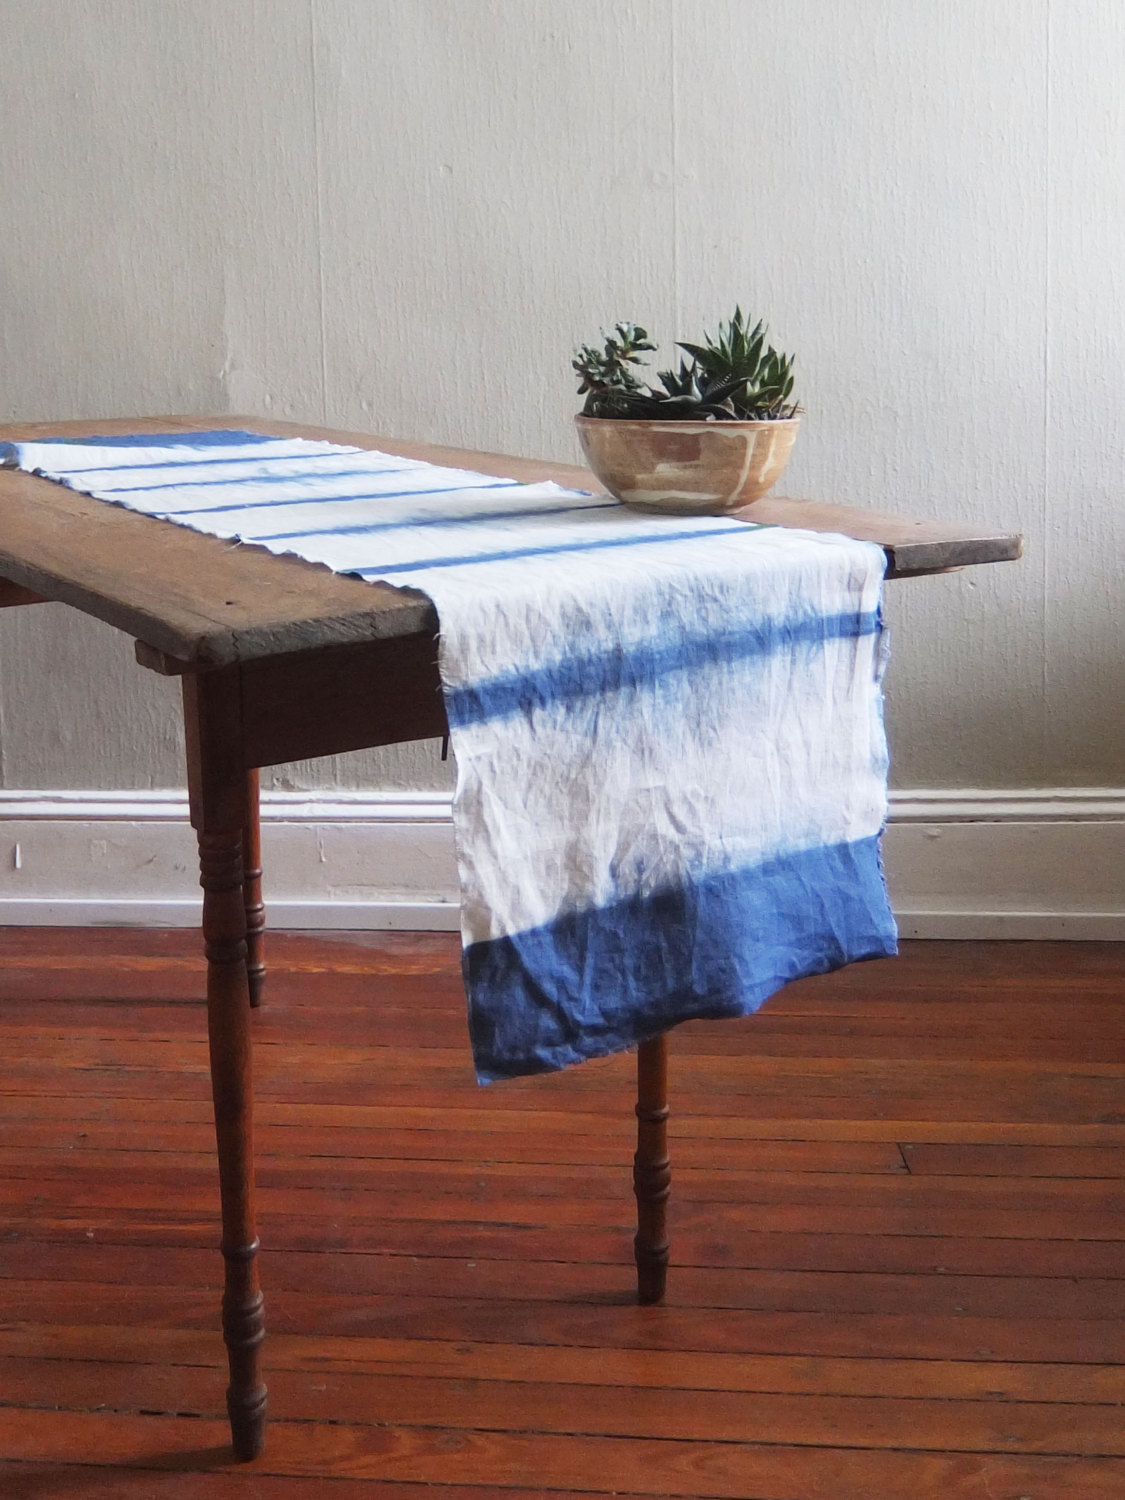 The Finest Table Runners for your Dining Table : Shibori table runner from Flora Poste Studio from moderndiningtables.net size 1125 x 1500 jpeg 293kB